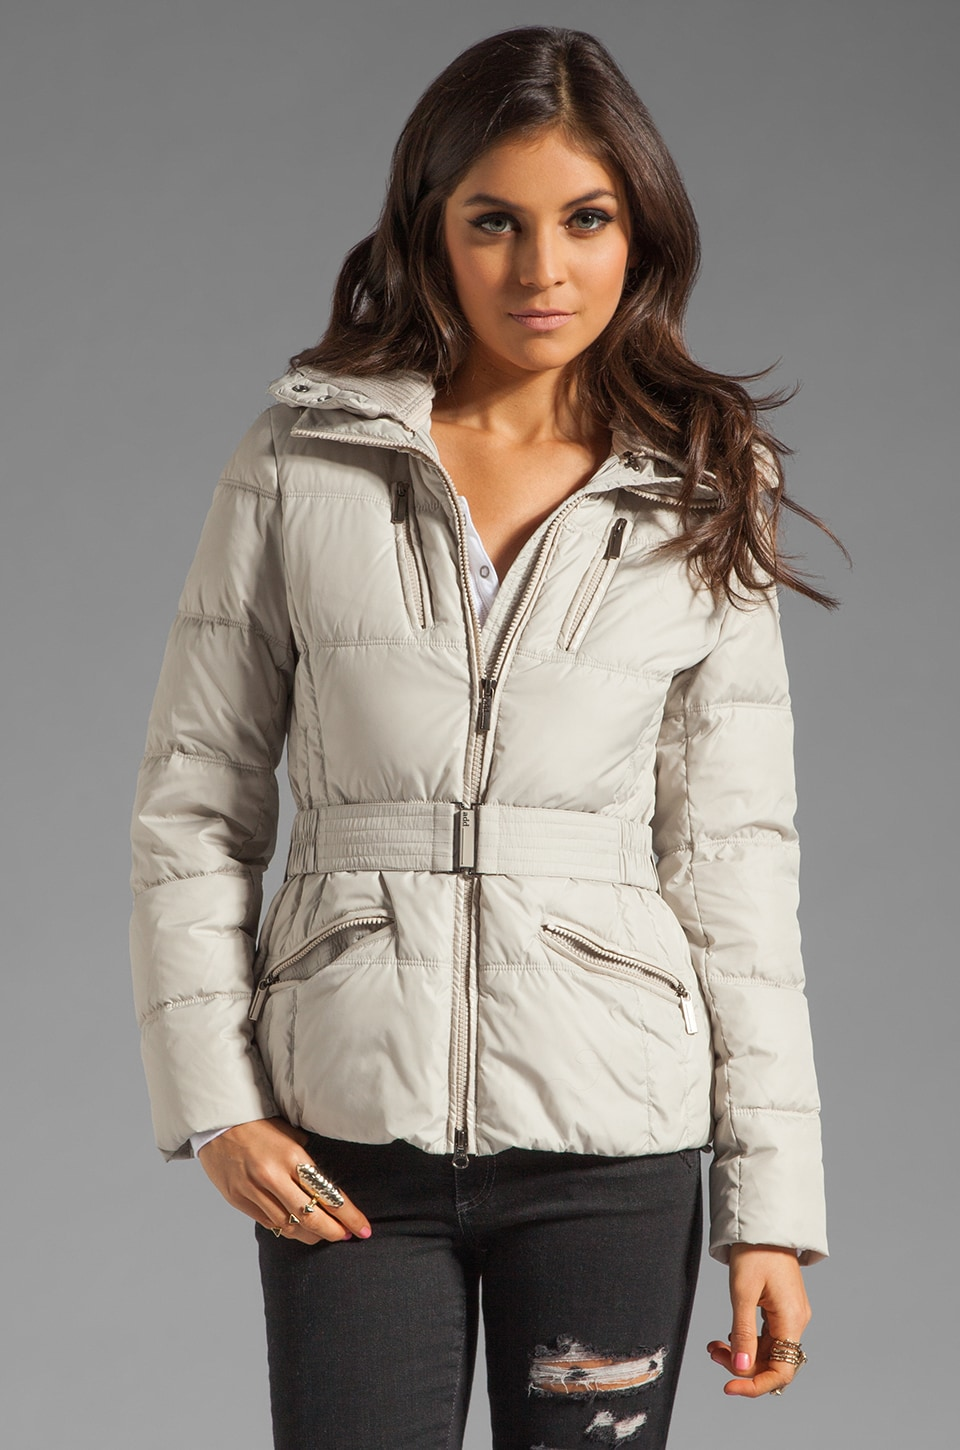 ADD Down Jacket in Almond